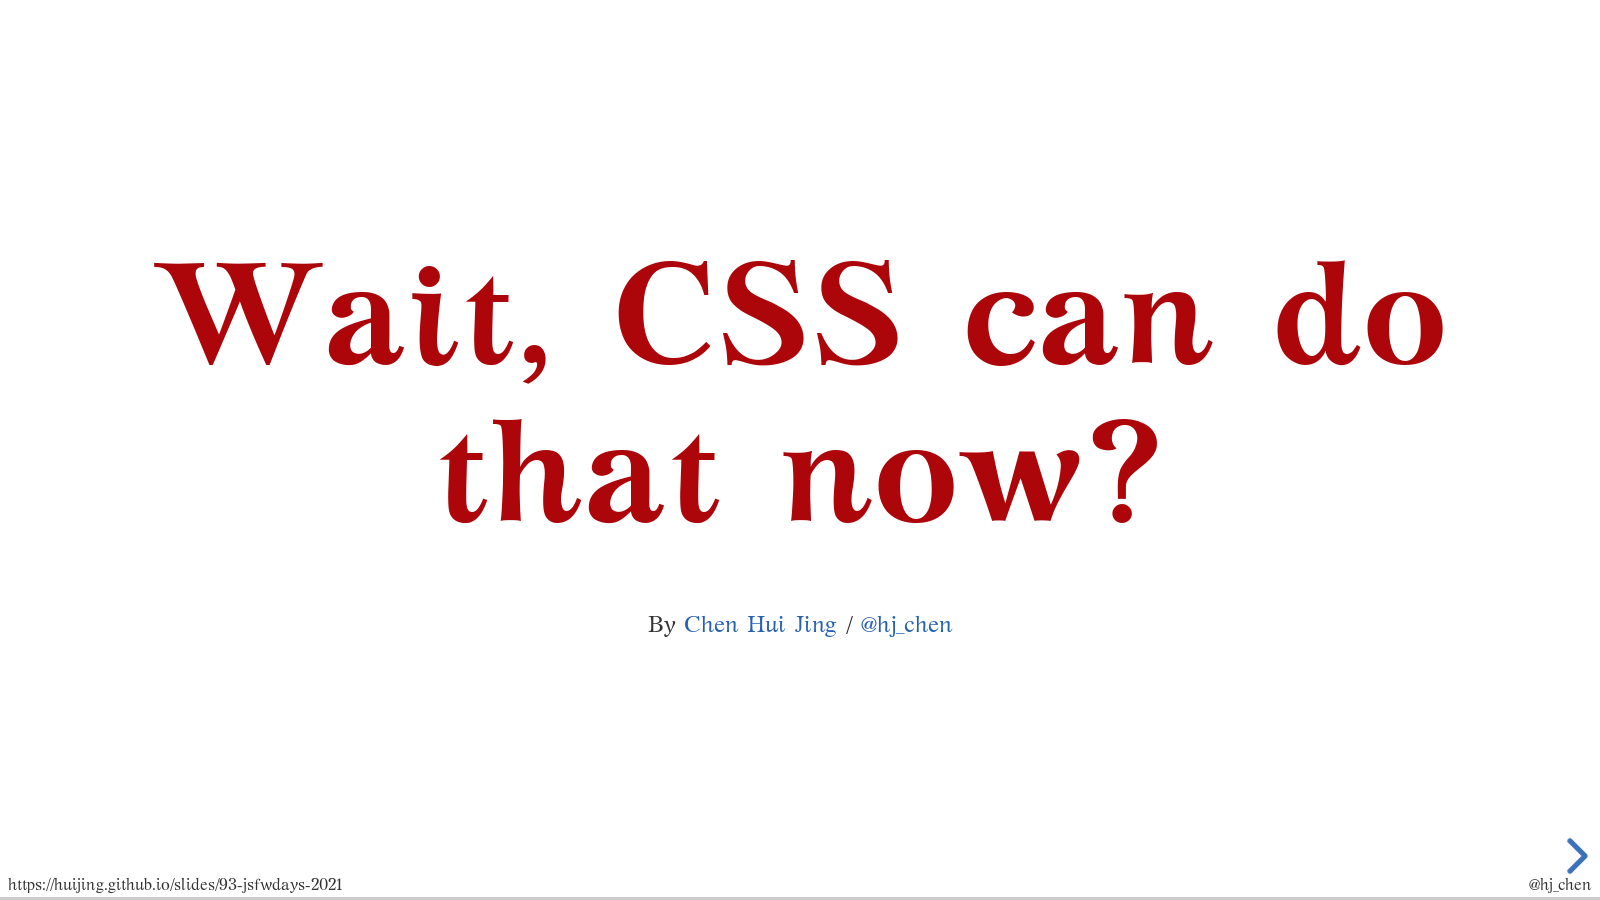 Wait, CSS can do that now?